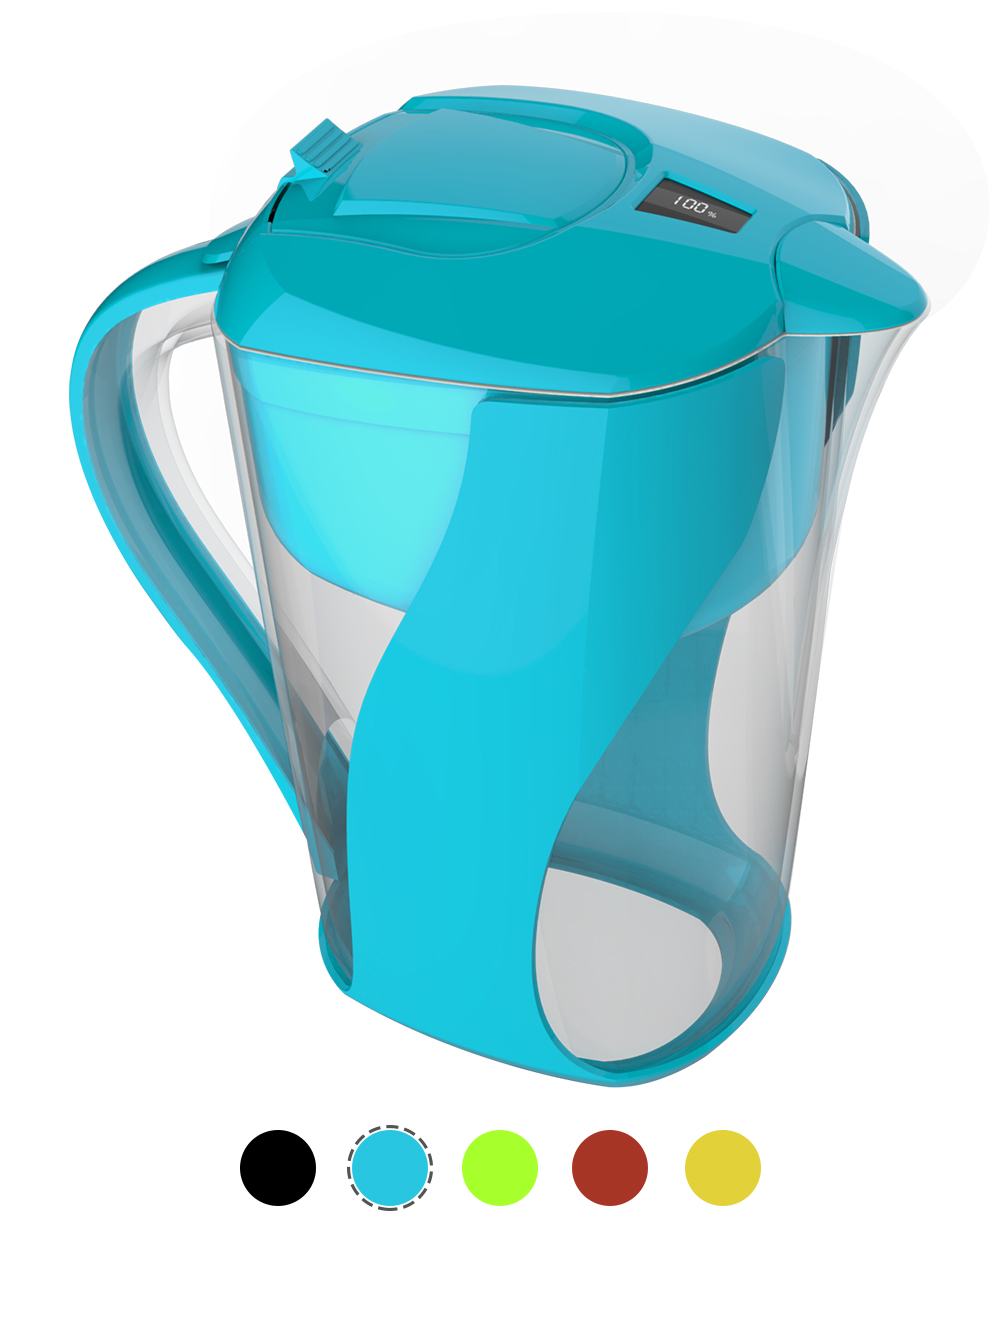 aok-109-new-alkaline-water-jug-2.jpg